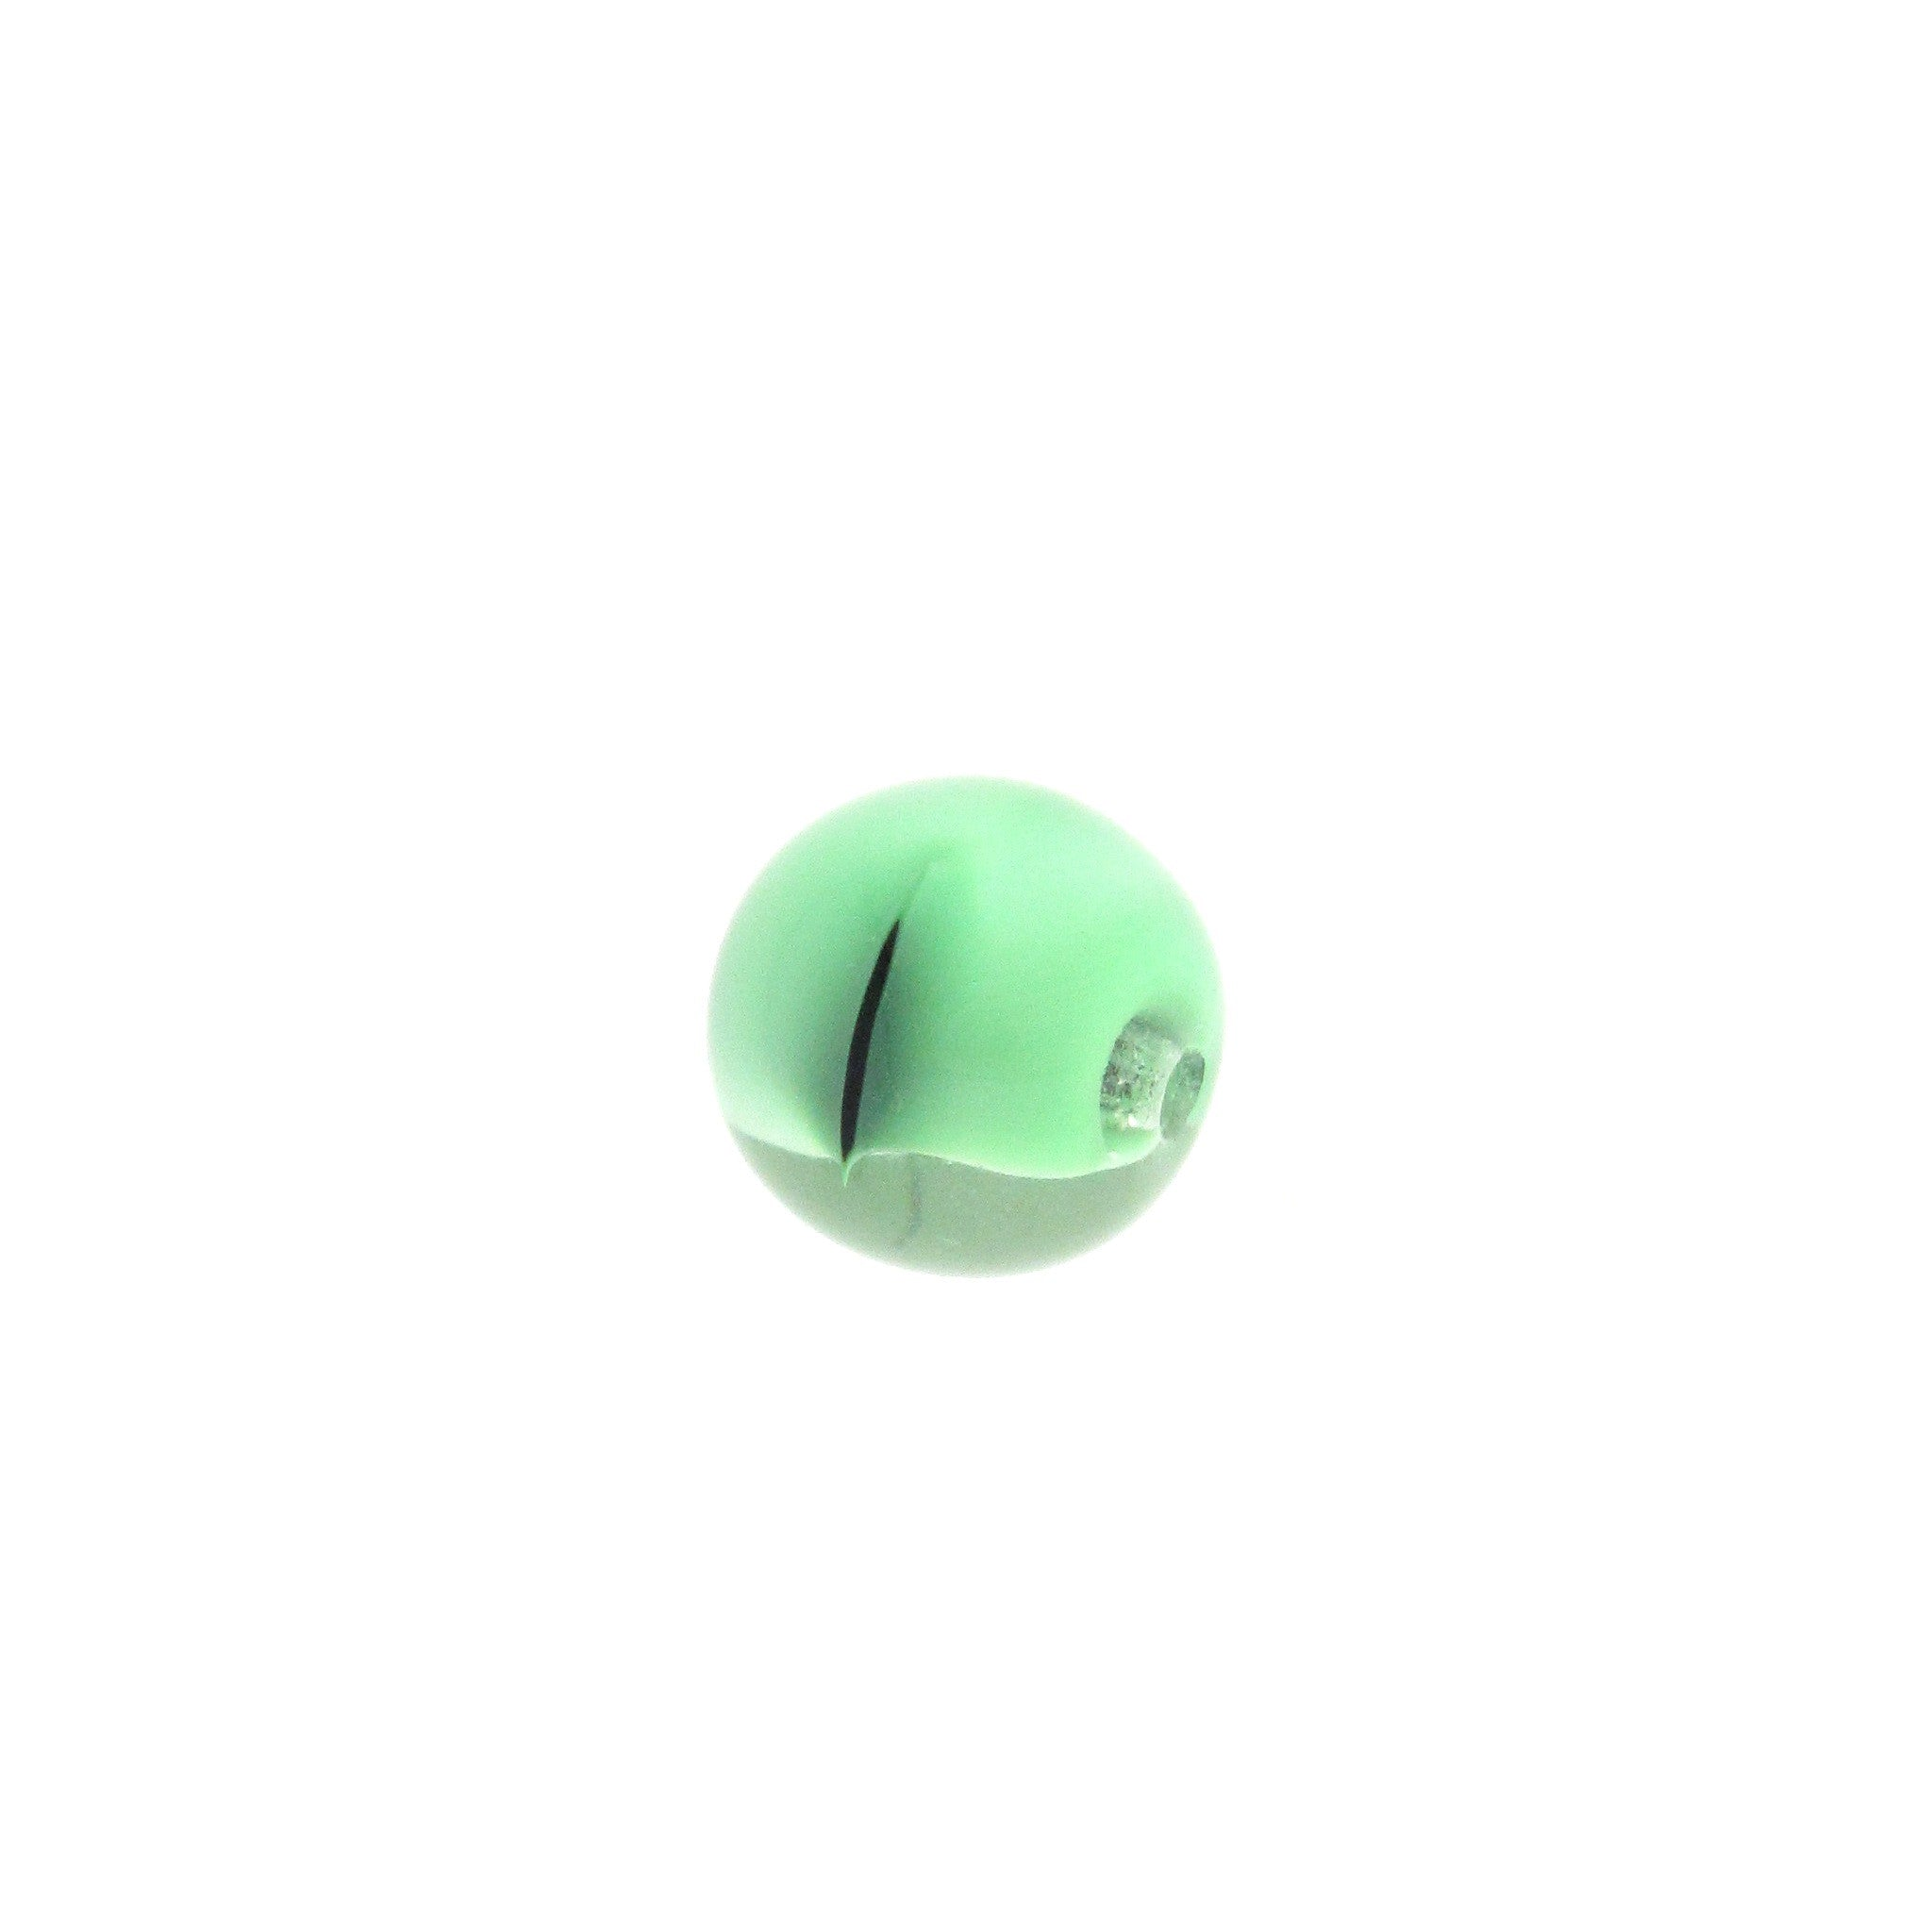 12MM Green Givre Glass Bead (36 pieces)